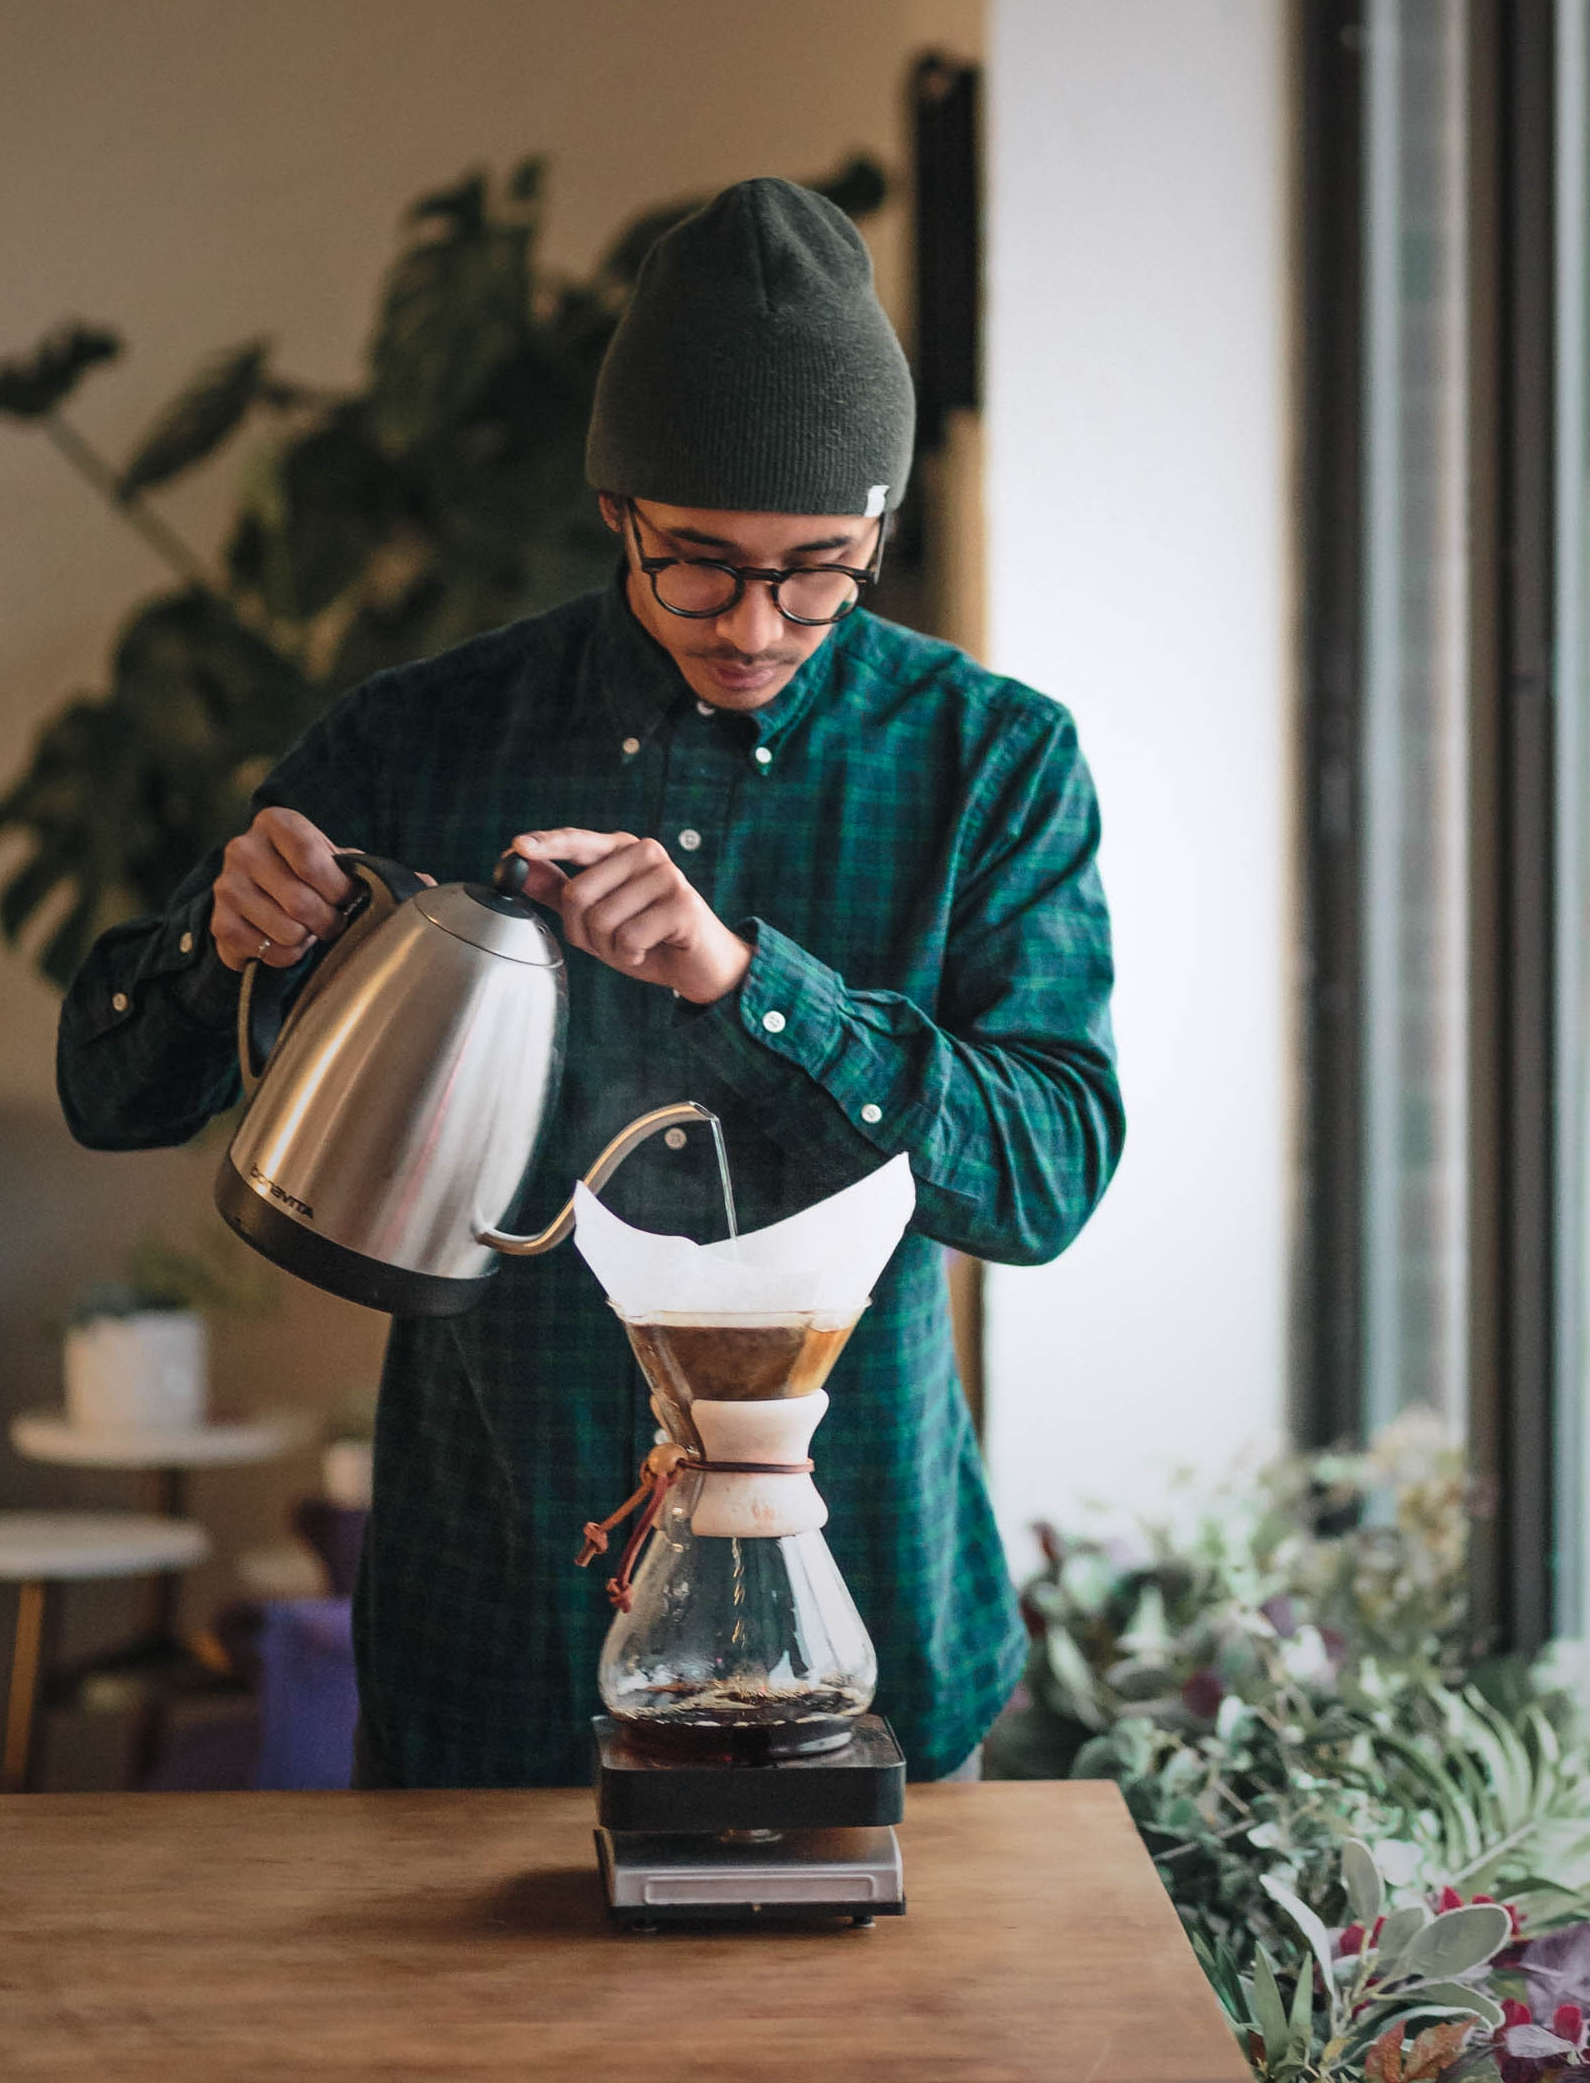 Ron Roy - Owner and Founder of 30mL Coffee Co. (formerly Craft Heads Coffee)